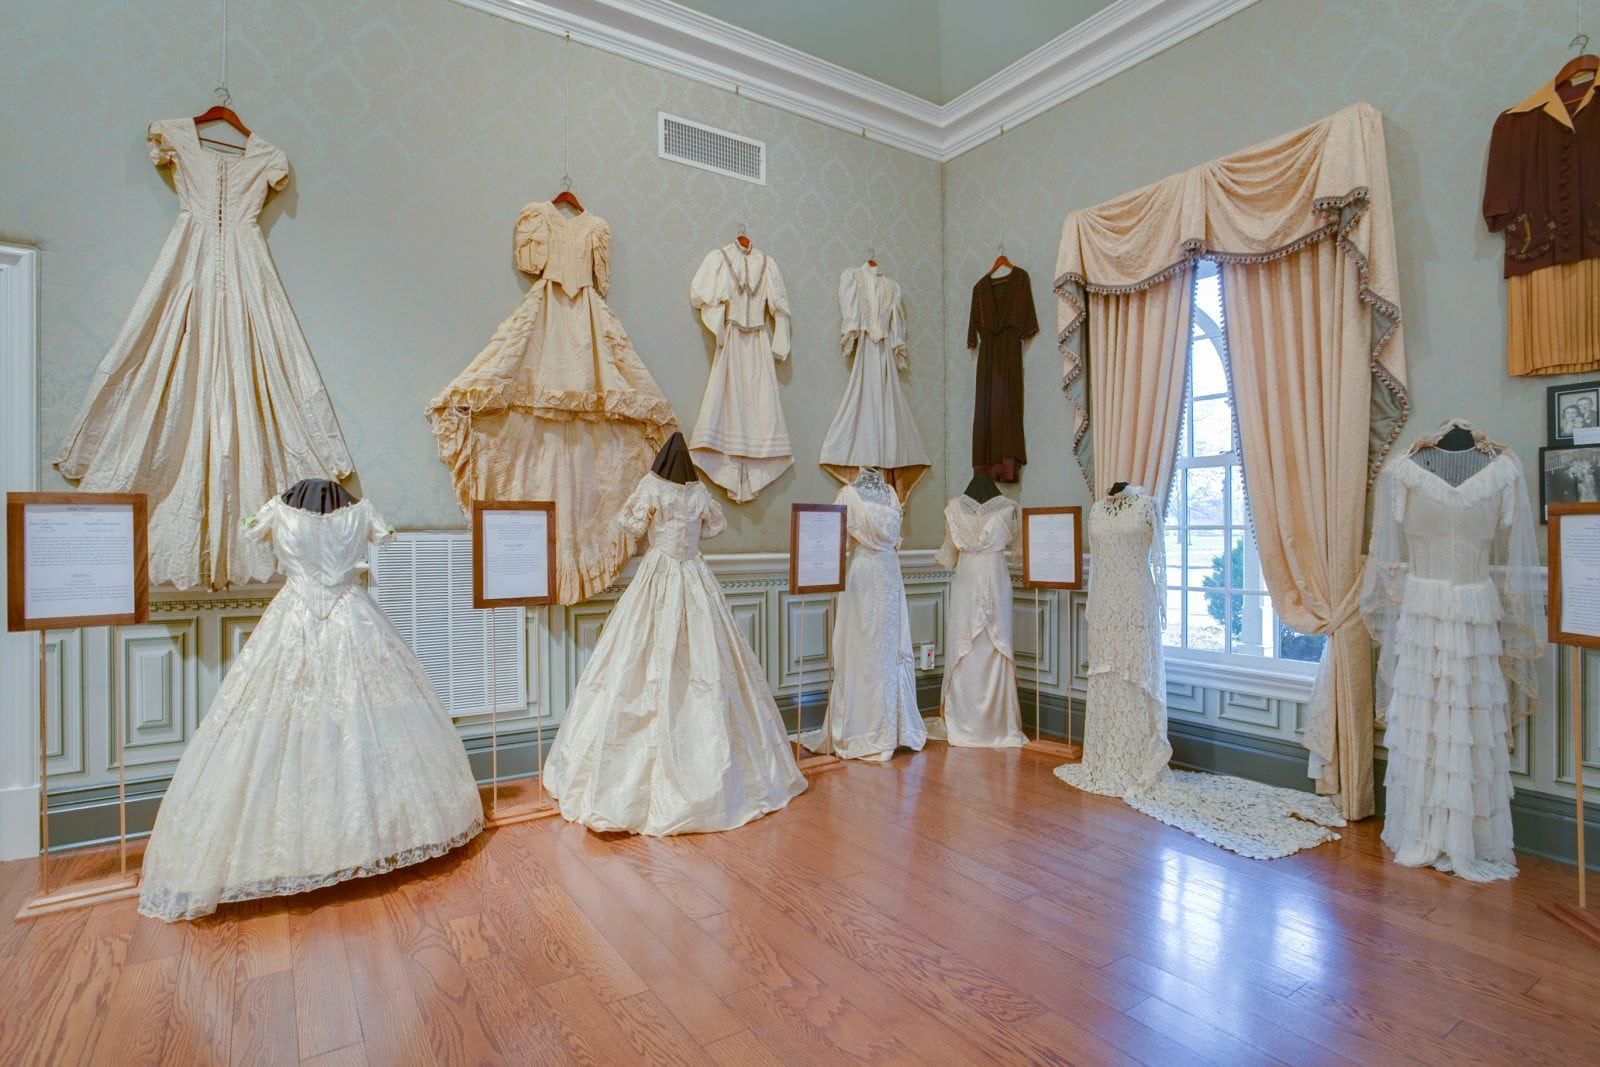 Wedding dresses through the decades exhibit at oaklands for Wedding dress display at home